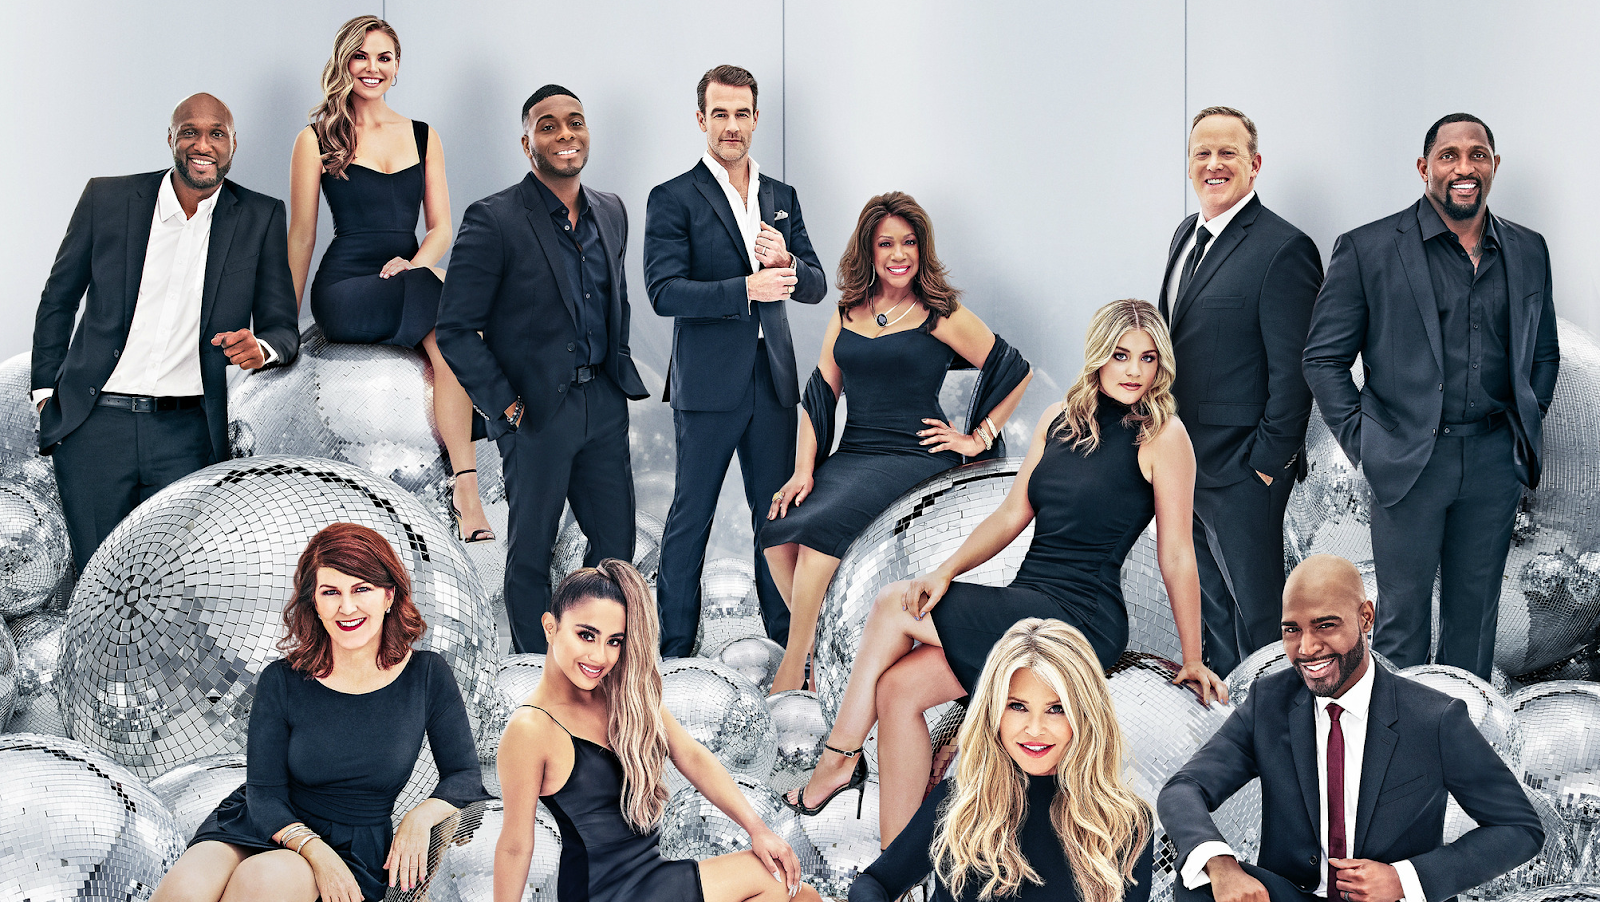 Dancing with the Stars Lamar Odom Kate Flannery Hannah Brown Kel Mitchell Ally Brooke James Van Der Beek Mary Wilson Christie Brinkley Lauren Alaina Sean Spicer Karamo Brown Ray Lewis ABC